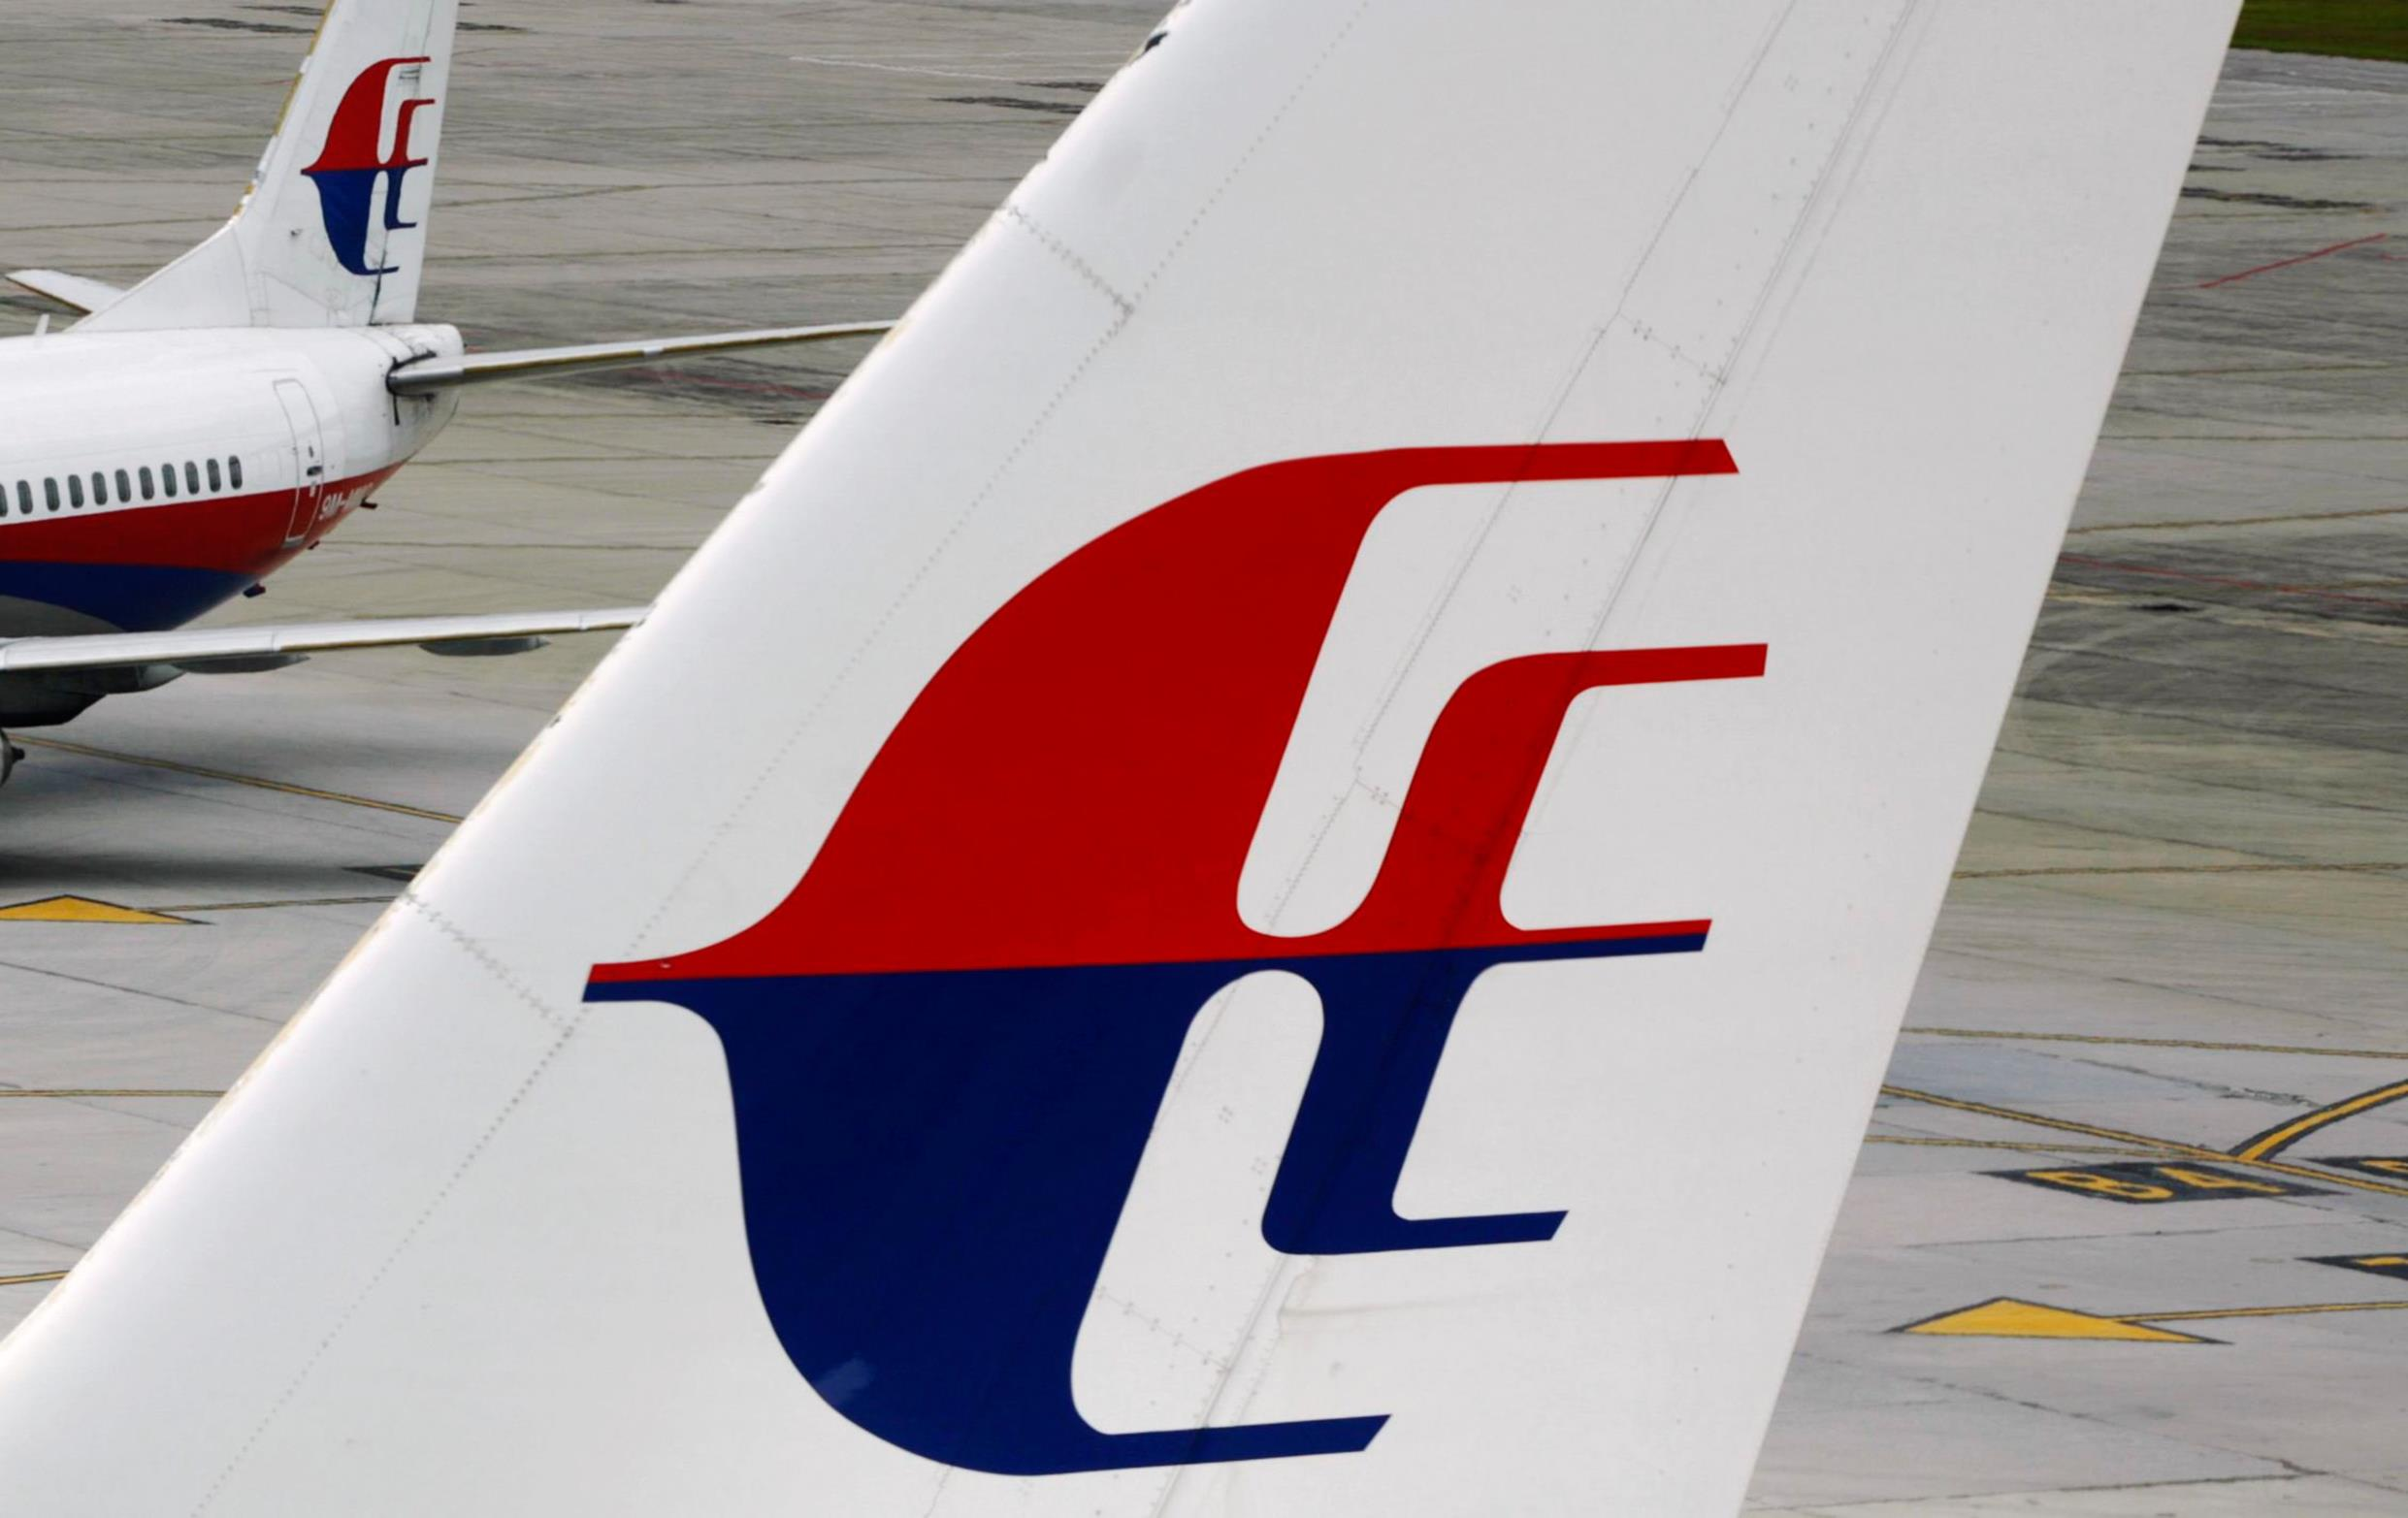 Image: The logo of Malaysia Airlines is seen on two aircrafts on the tarmac at Kuala Lumpur International Airport in Sepang